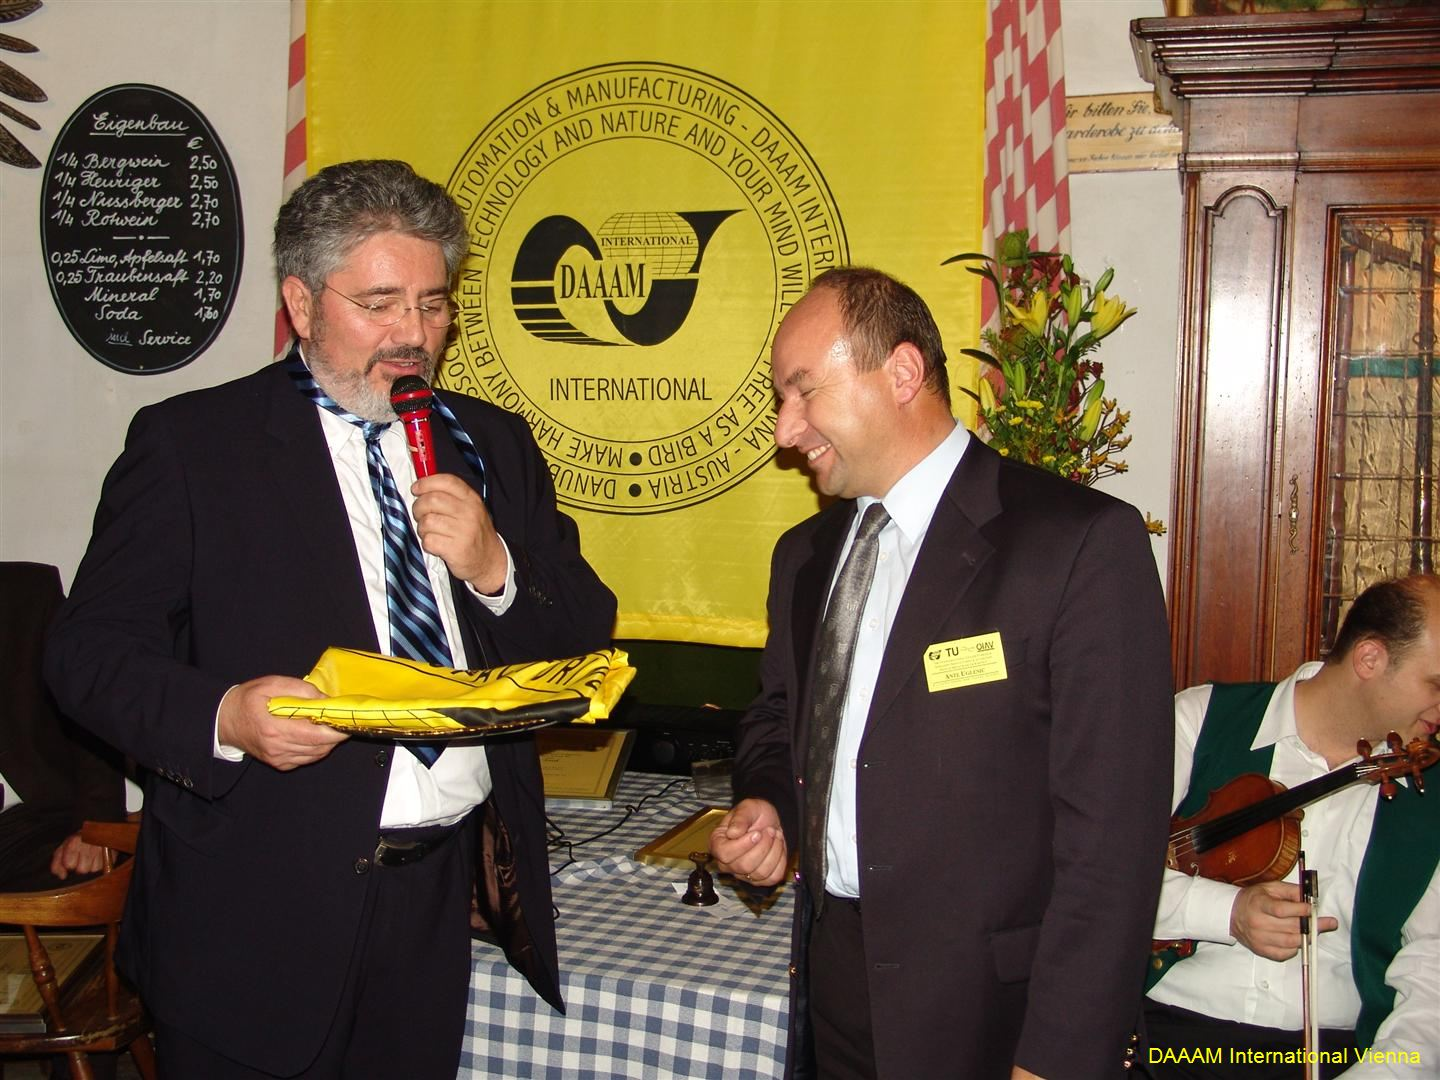 daaam_2006_vienna_dinner_recognitions_lectures_082